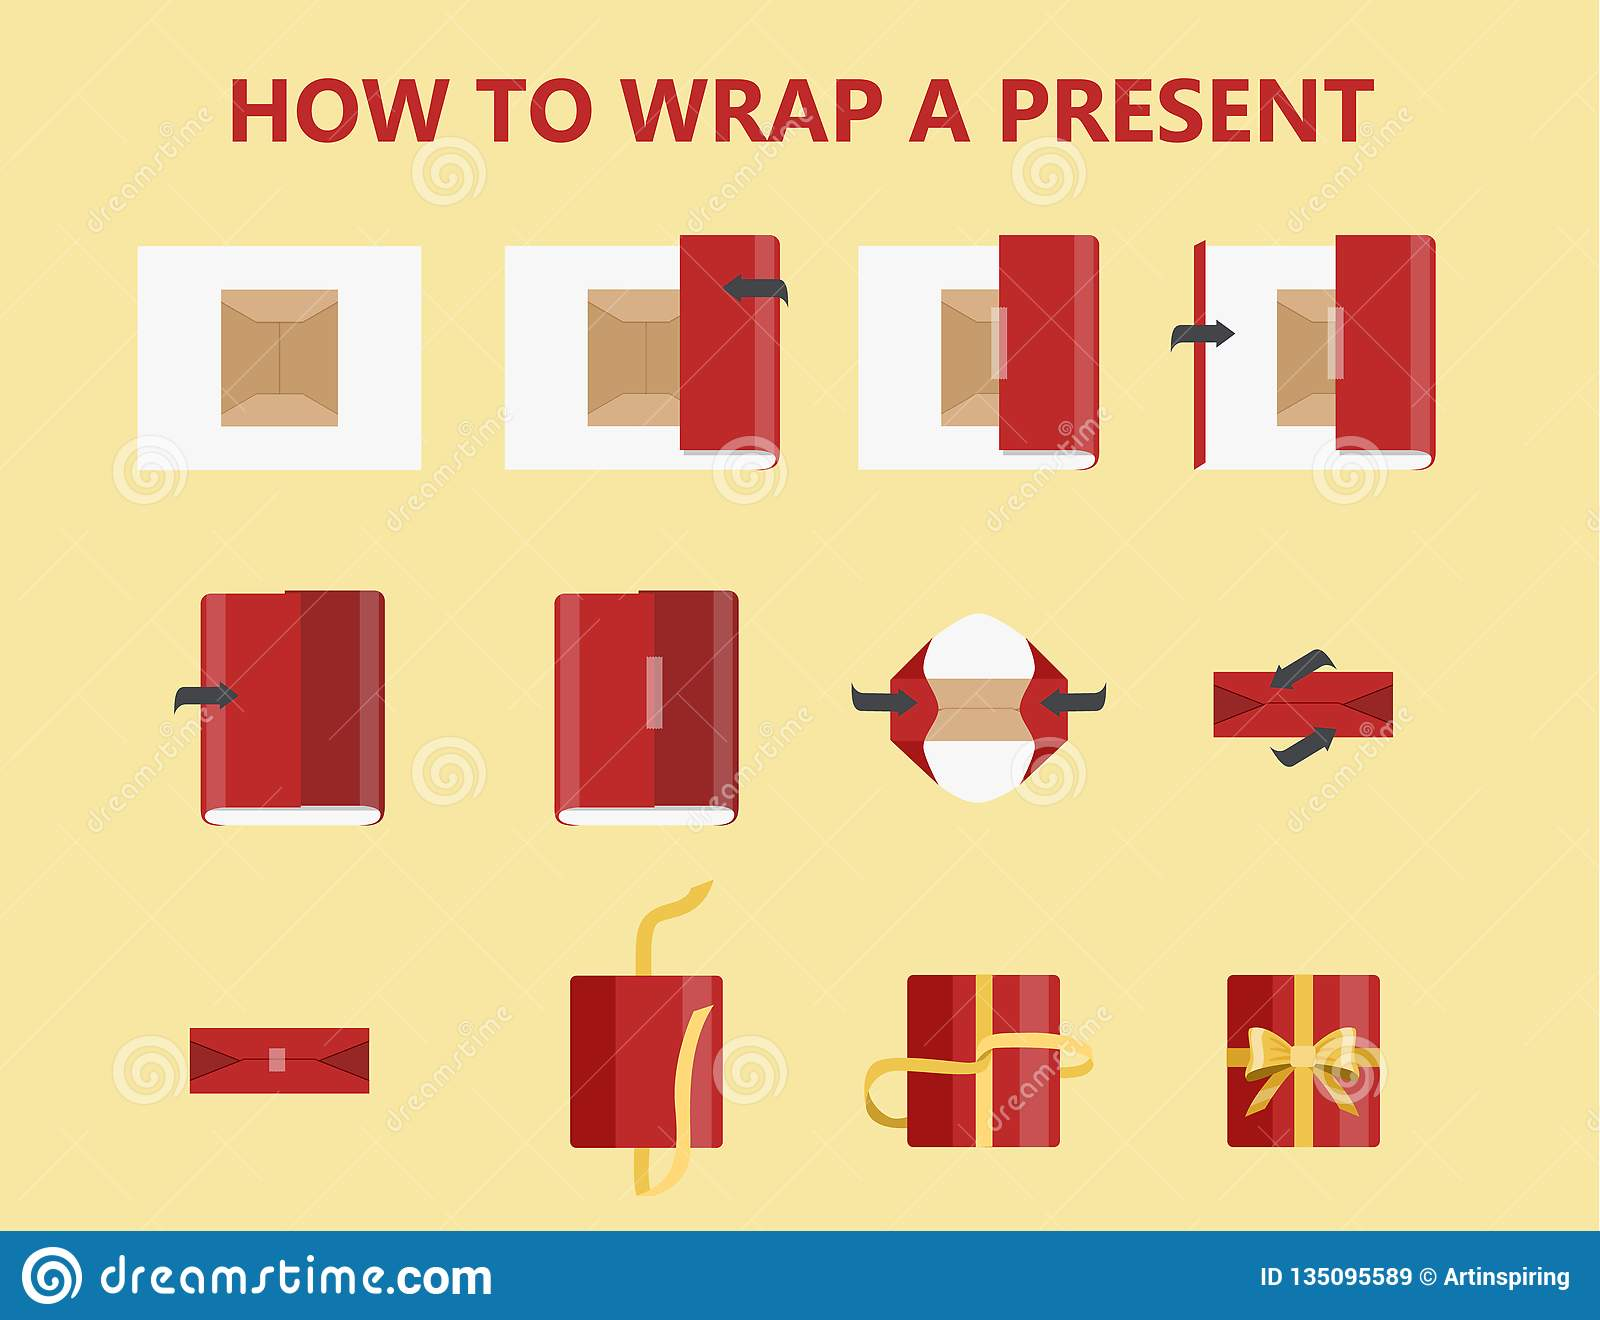 How To Wrap A Present Step By Step Instruction Stock Vector